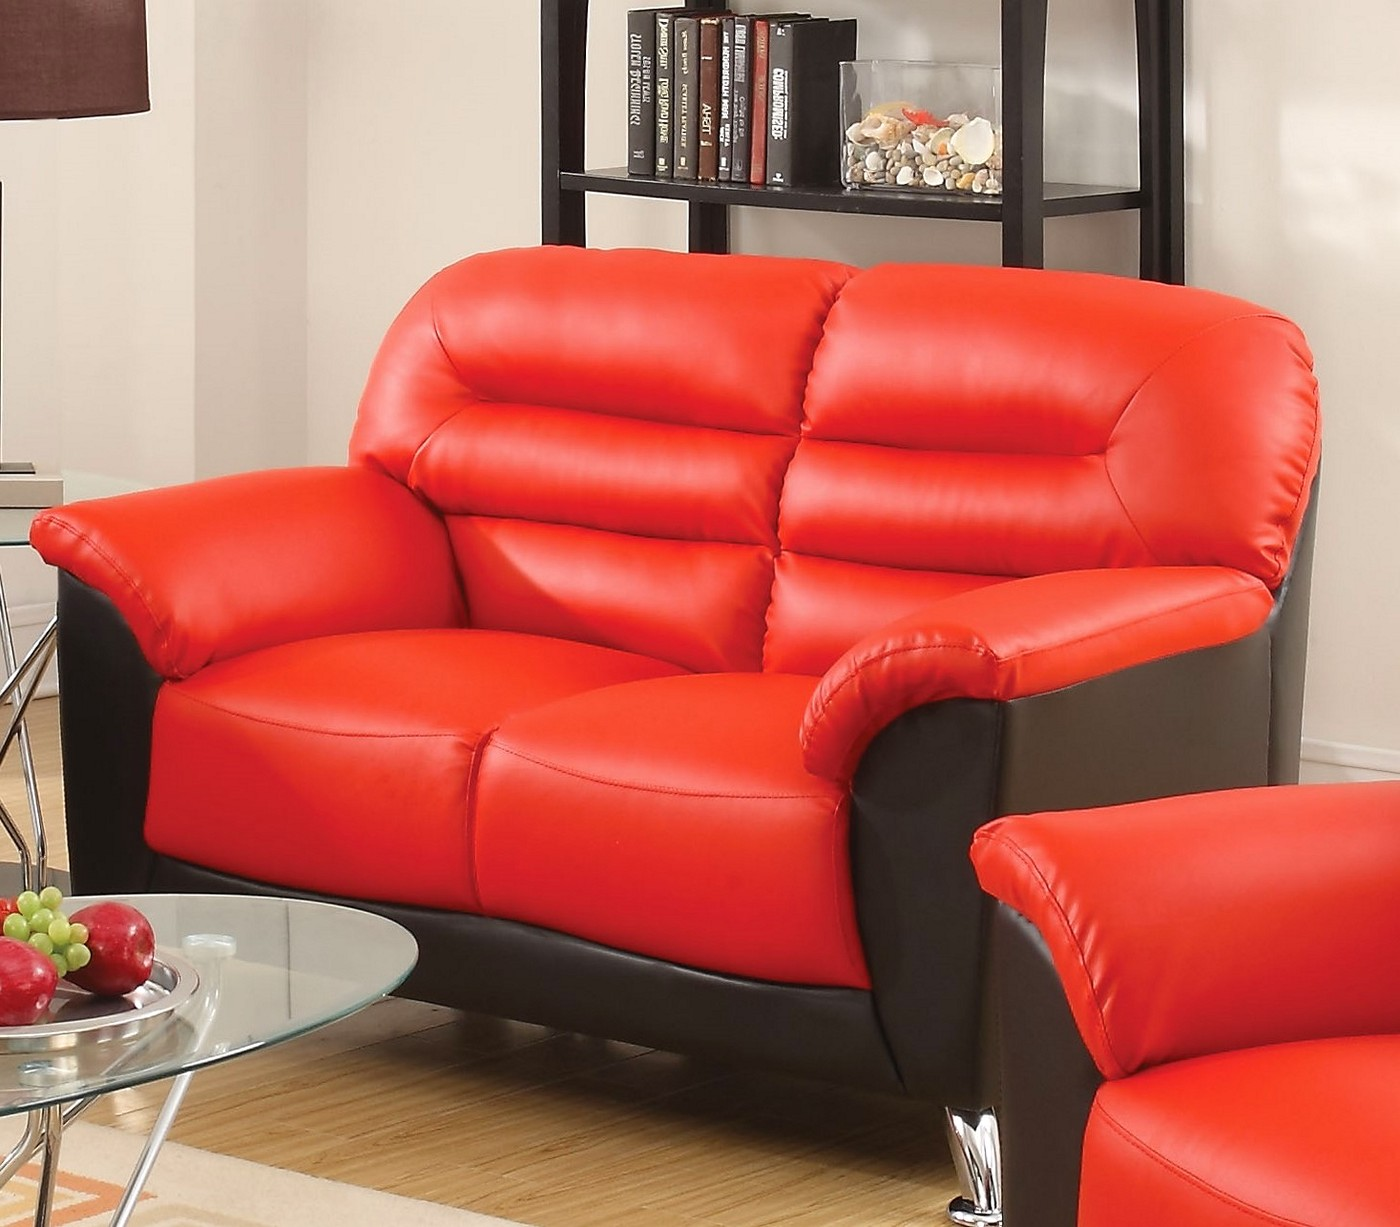 Asmund Modern Black Amp Red Faux Leather Sofa Amp Loveseat